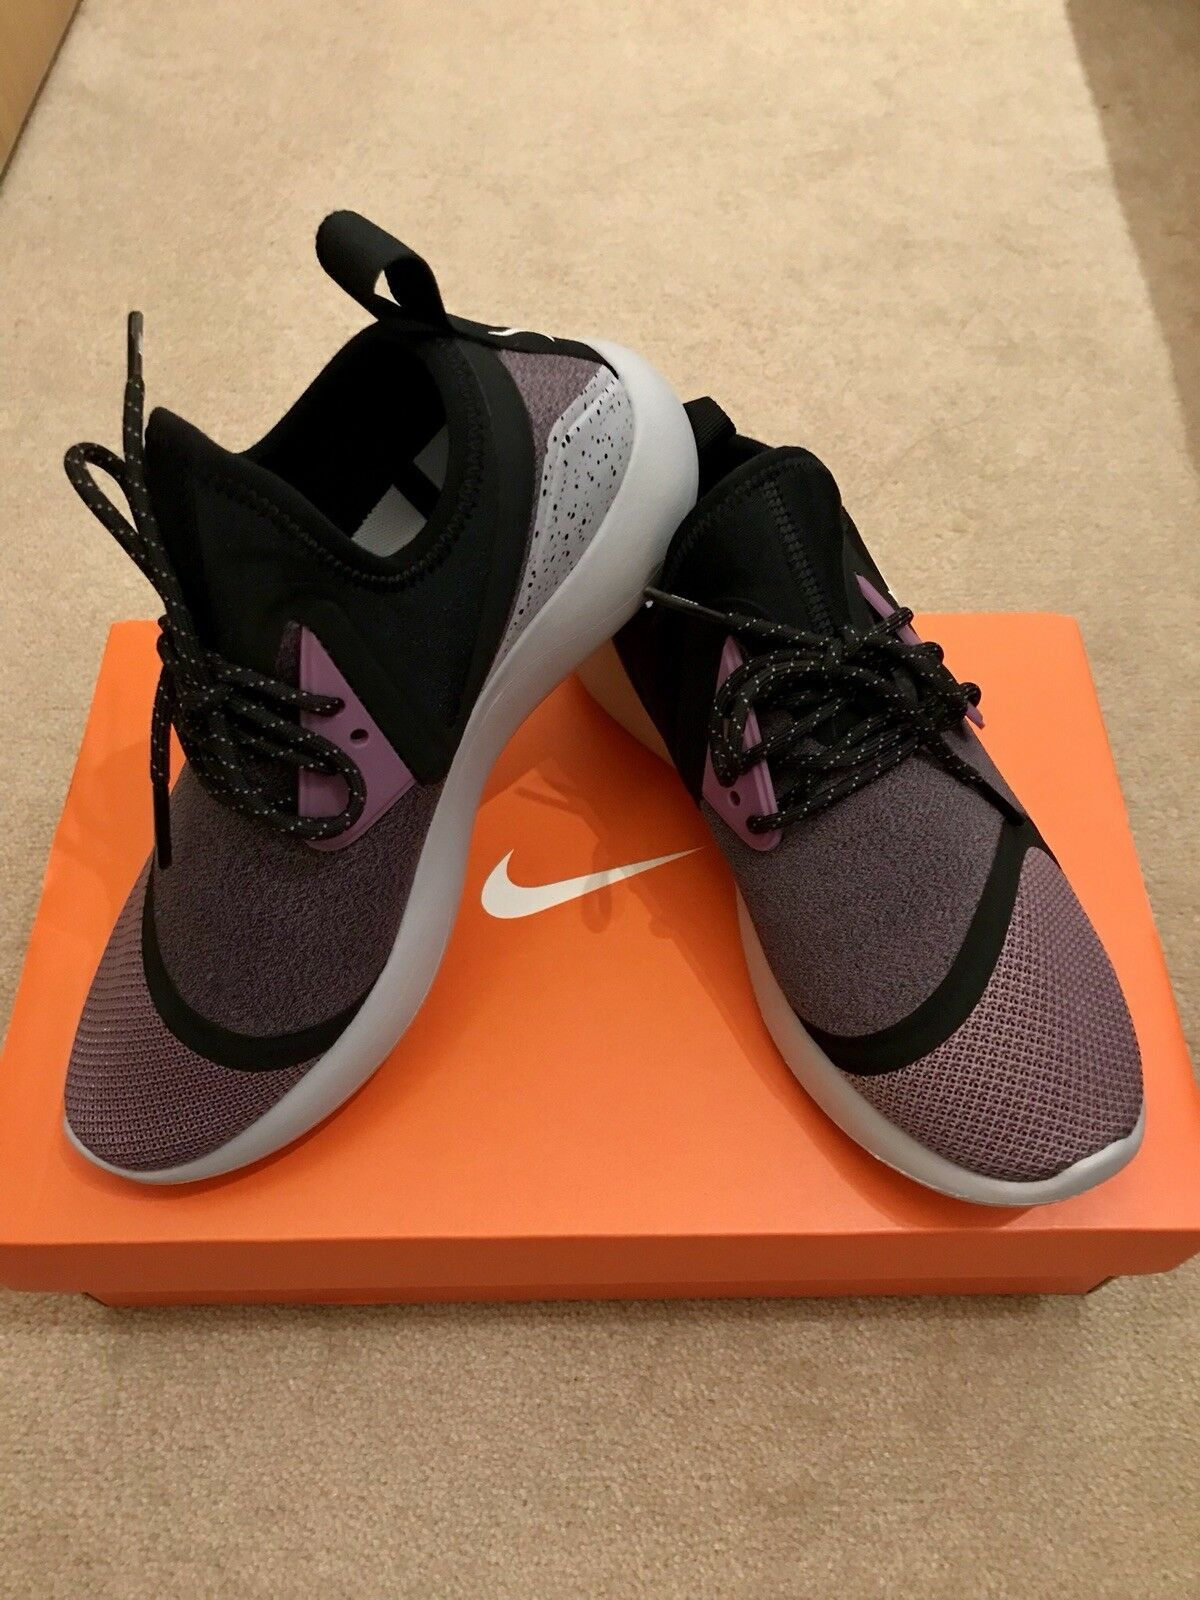 Nike LunarCharge Essential (Size uK 4) Brand new